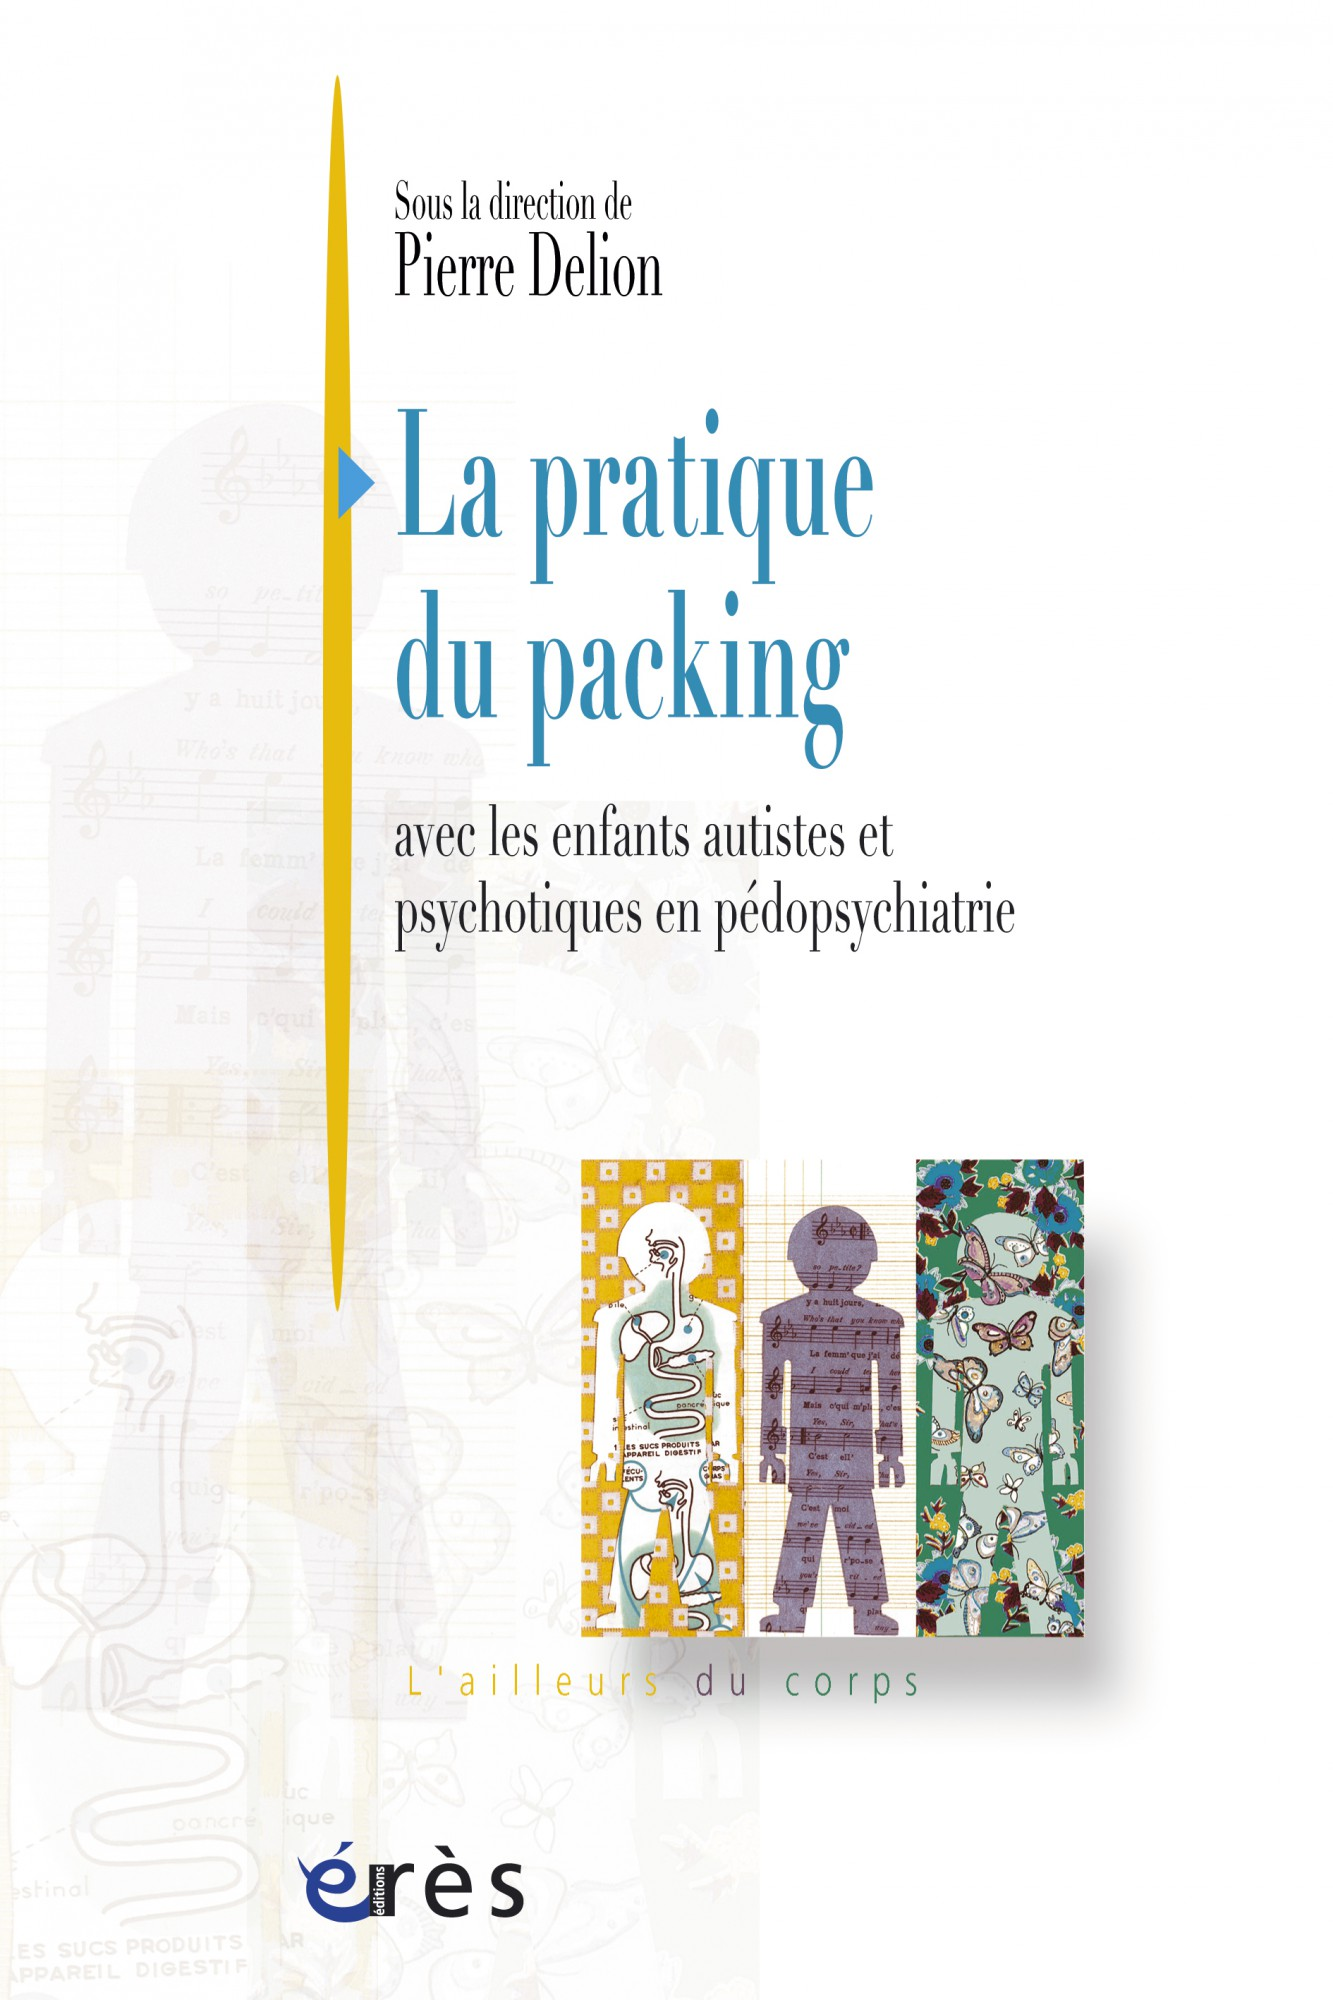 Pierre Delion Packing